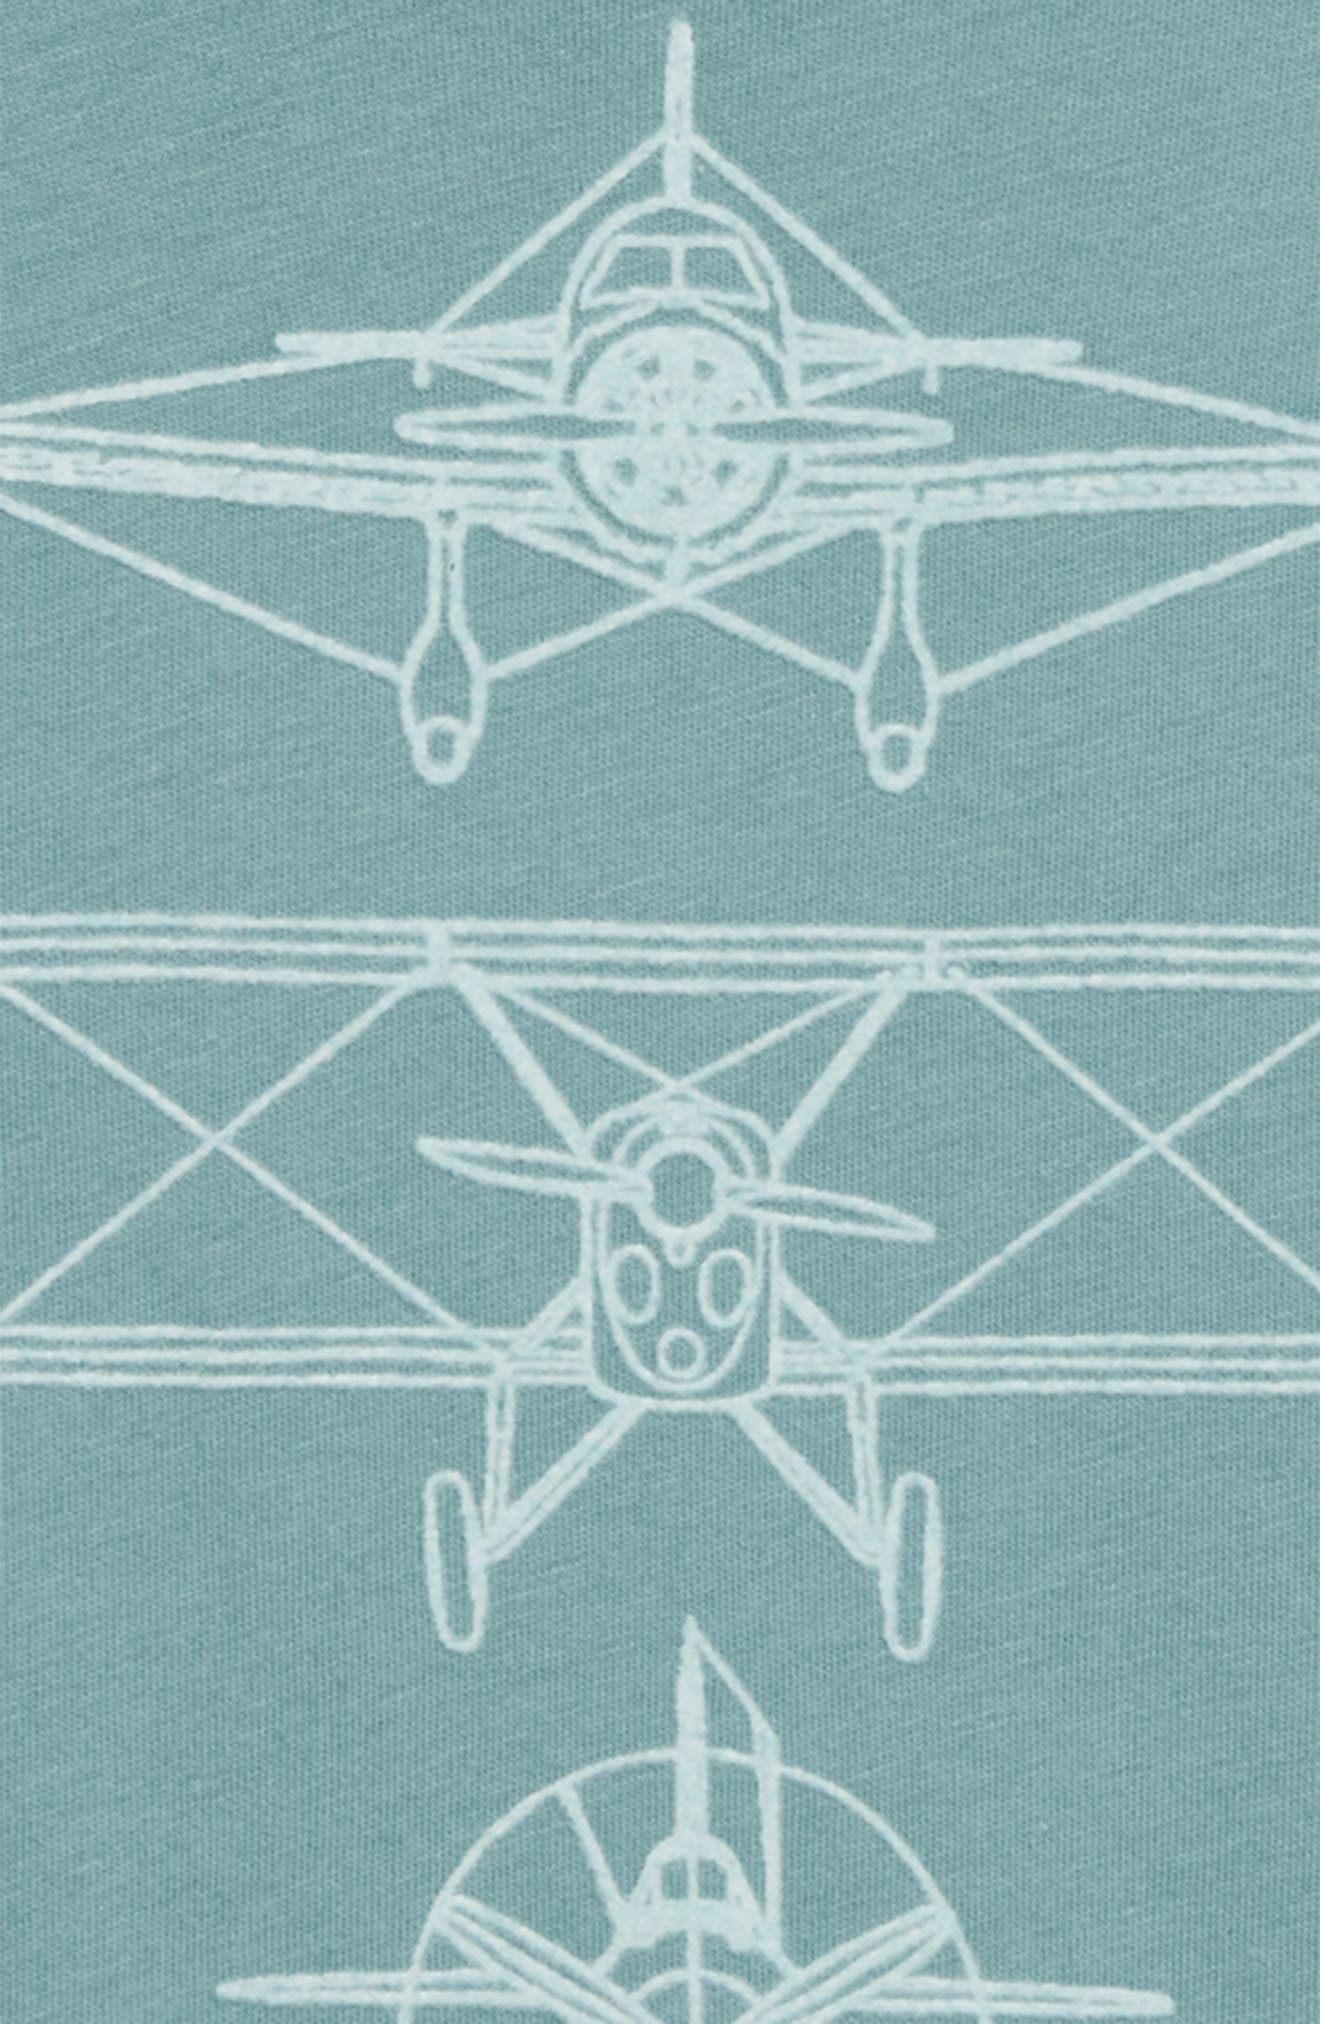 Peek Airplane Graphic T-Shirt,                             Alternate thumbnail 3, color,                             400